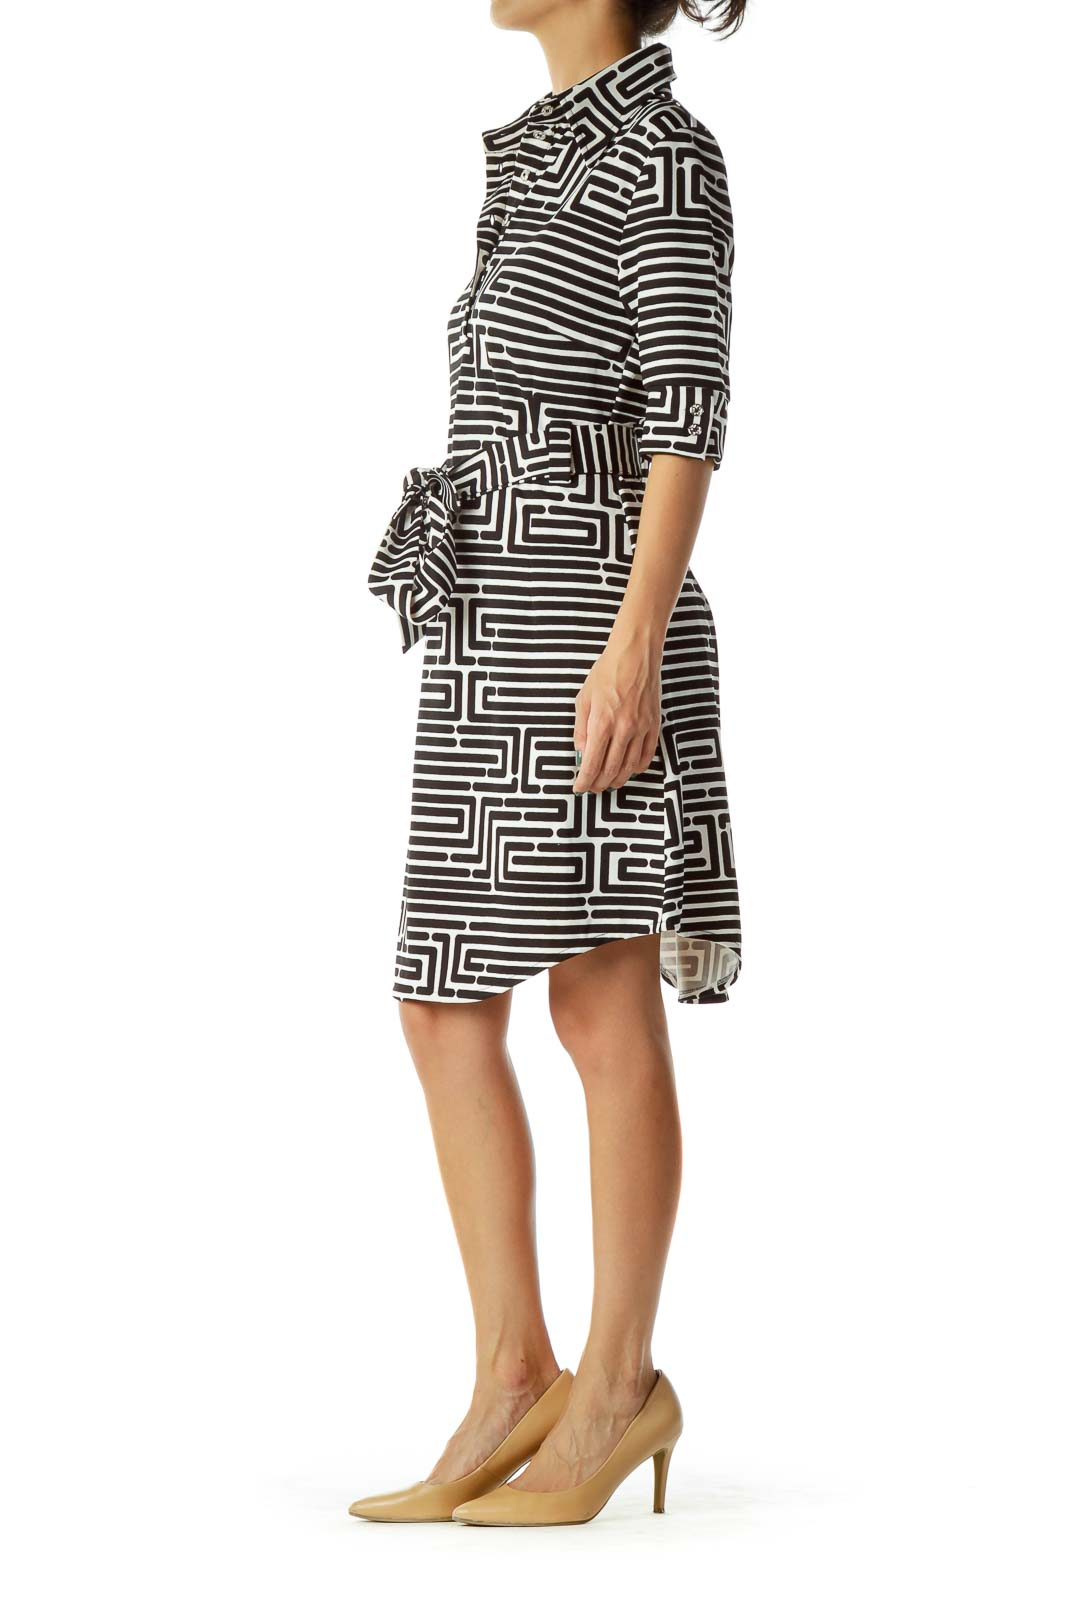 Black White Geometric Print Dress